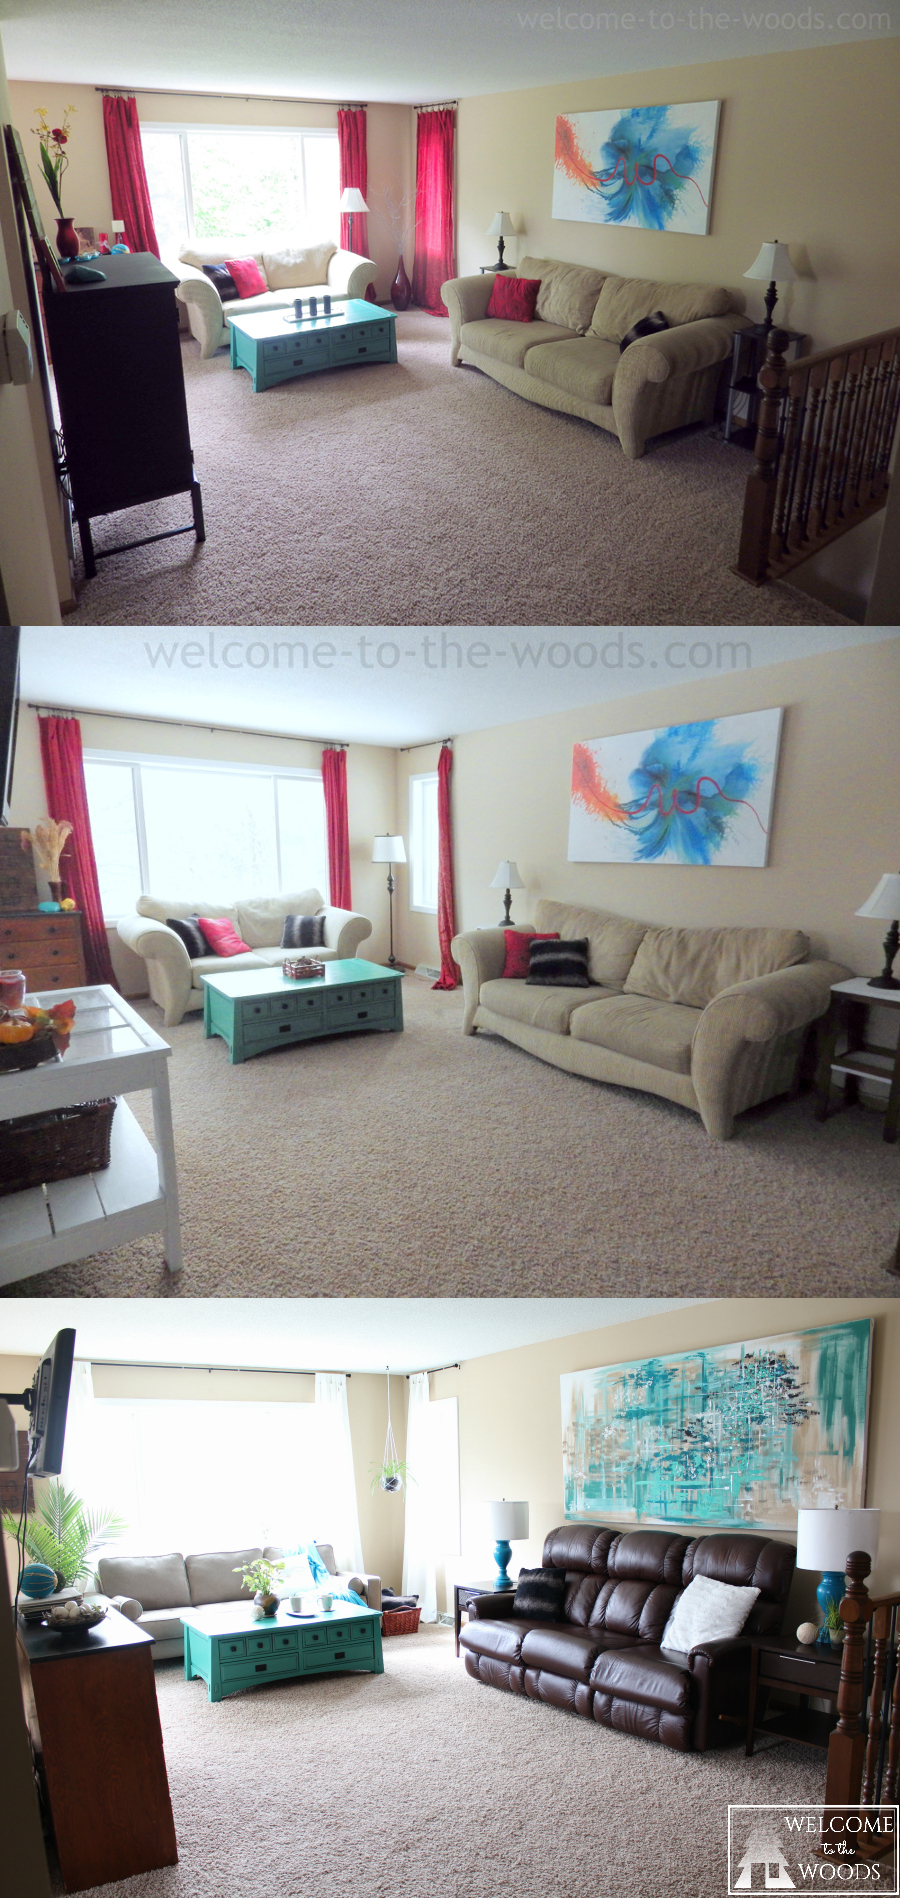 Living room transformation; Before & After makeover photographs the evolution of style.